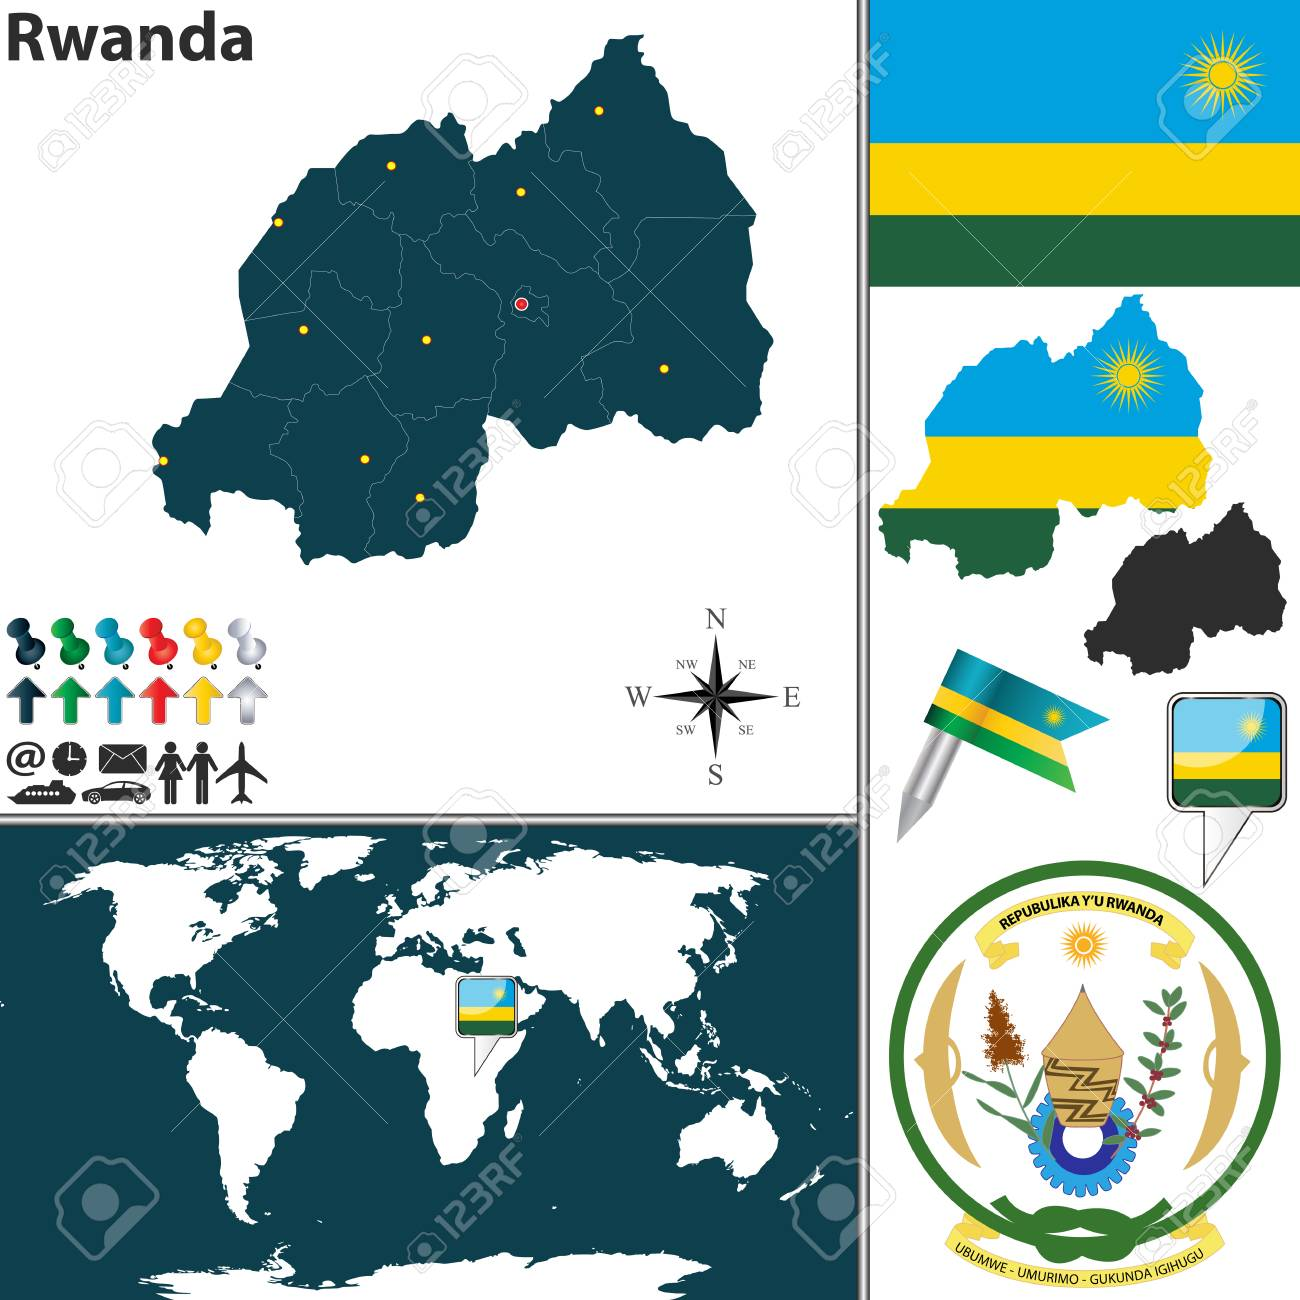 Map Of Rwanda With Regions Coat Of Arms And Location On World